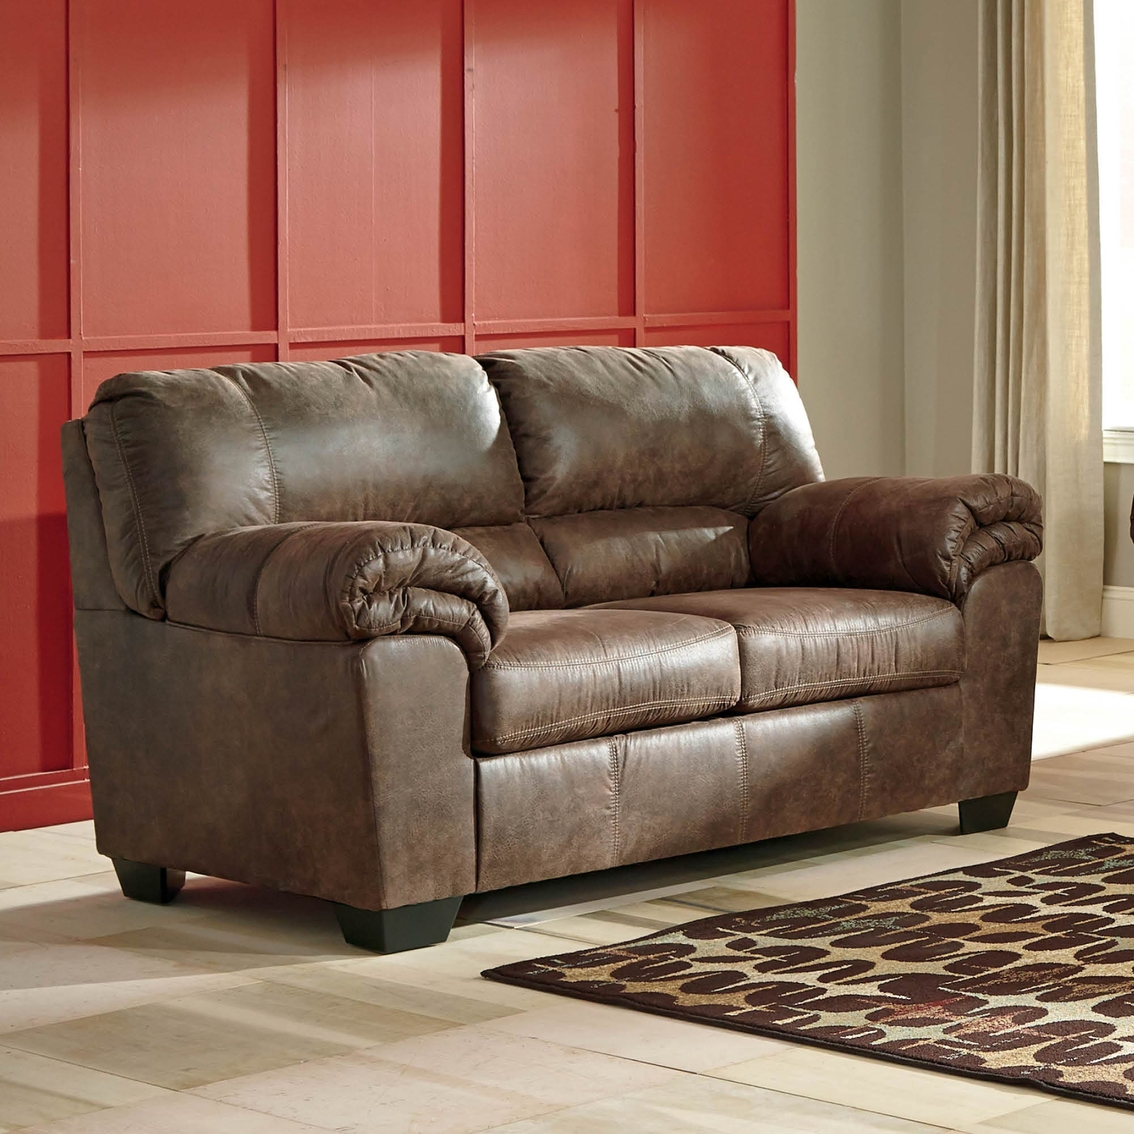 Miraculous Ashley Signature Design Bladen Loveseat Sofas Couches Gmtry Best Dining Table And Chair Ideas Images Gmtryco